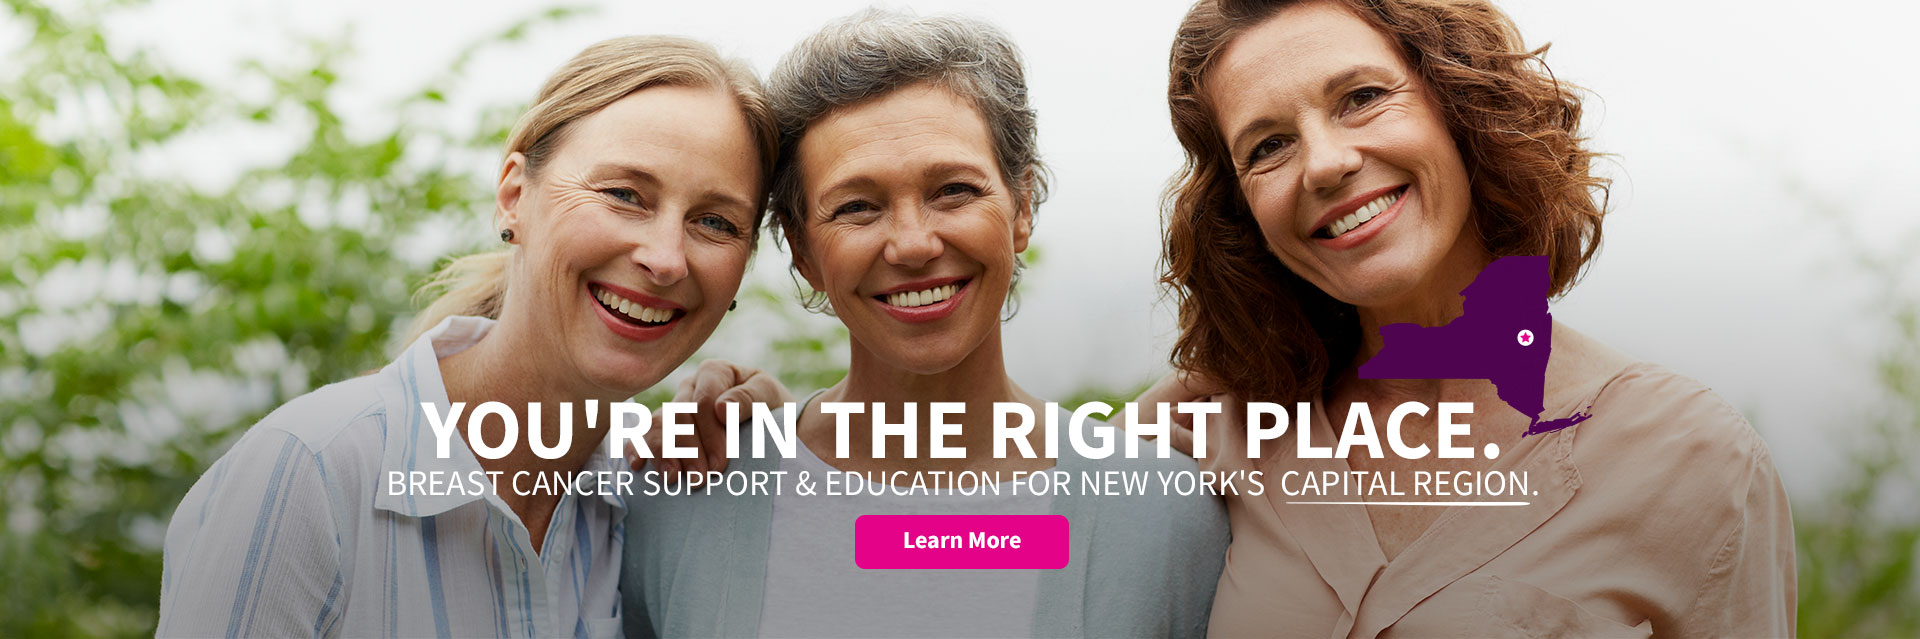 Three women smile in support of breast cancer education